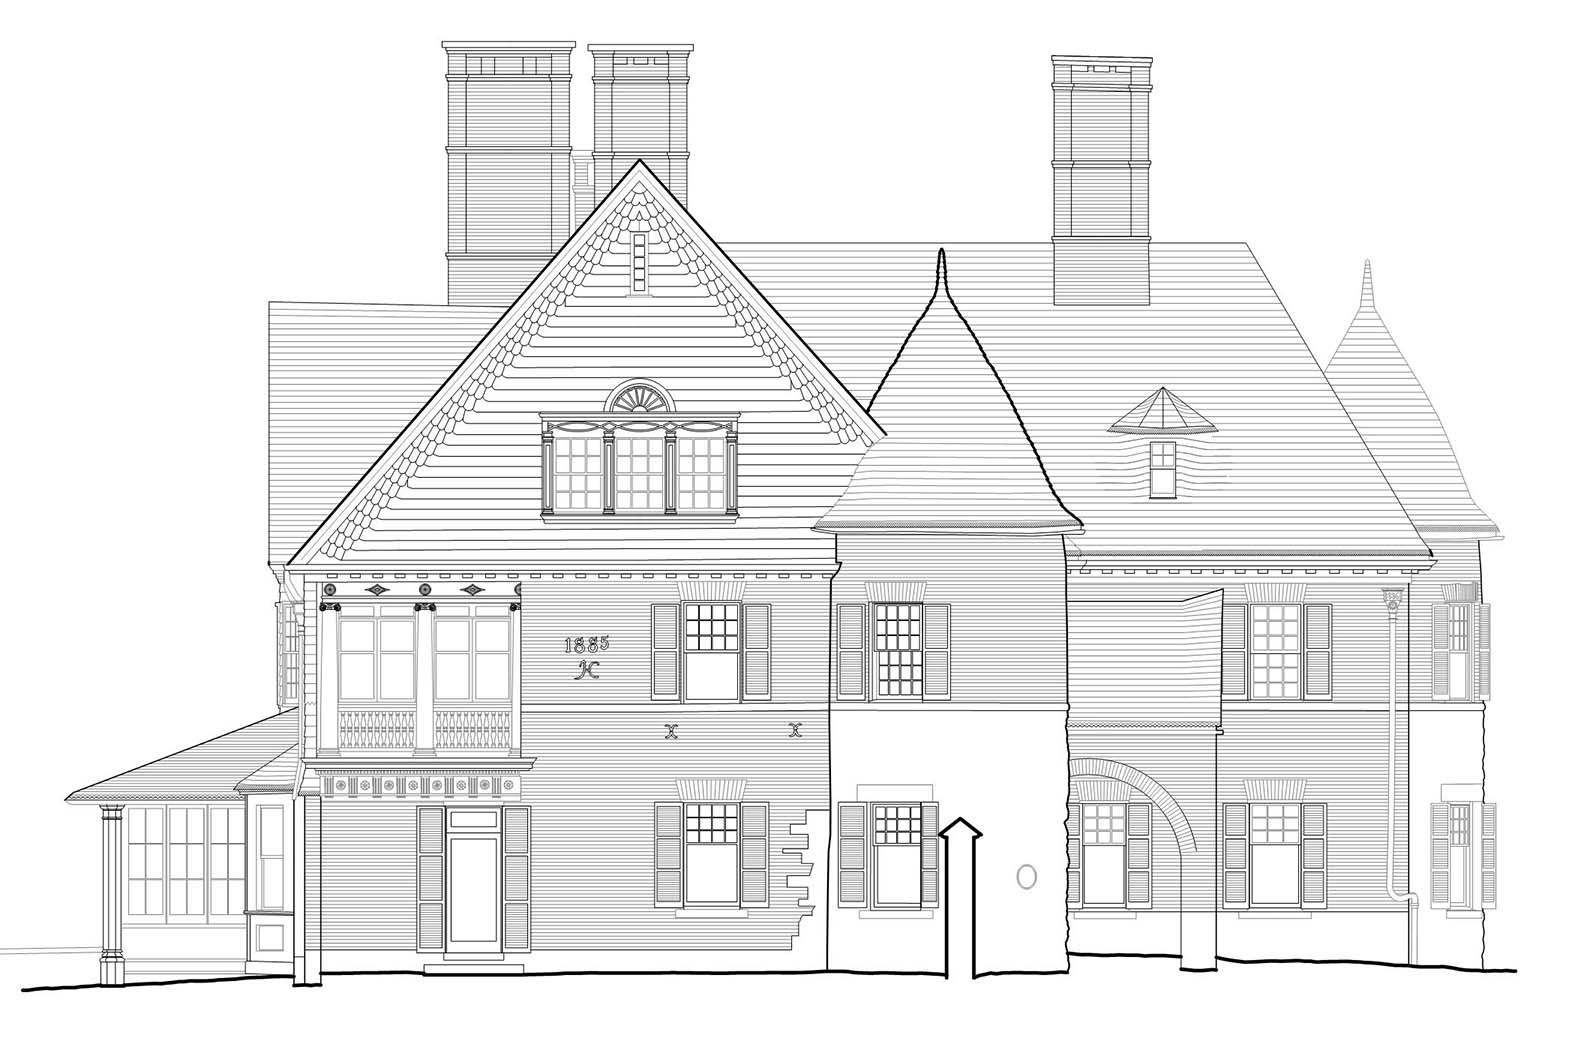 Final line drawing elevation